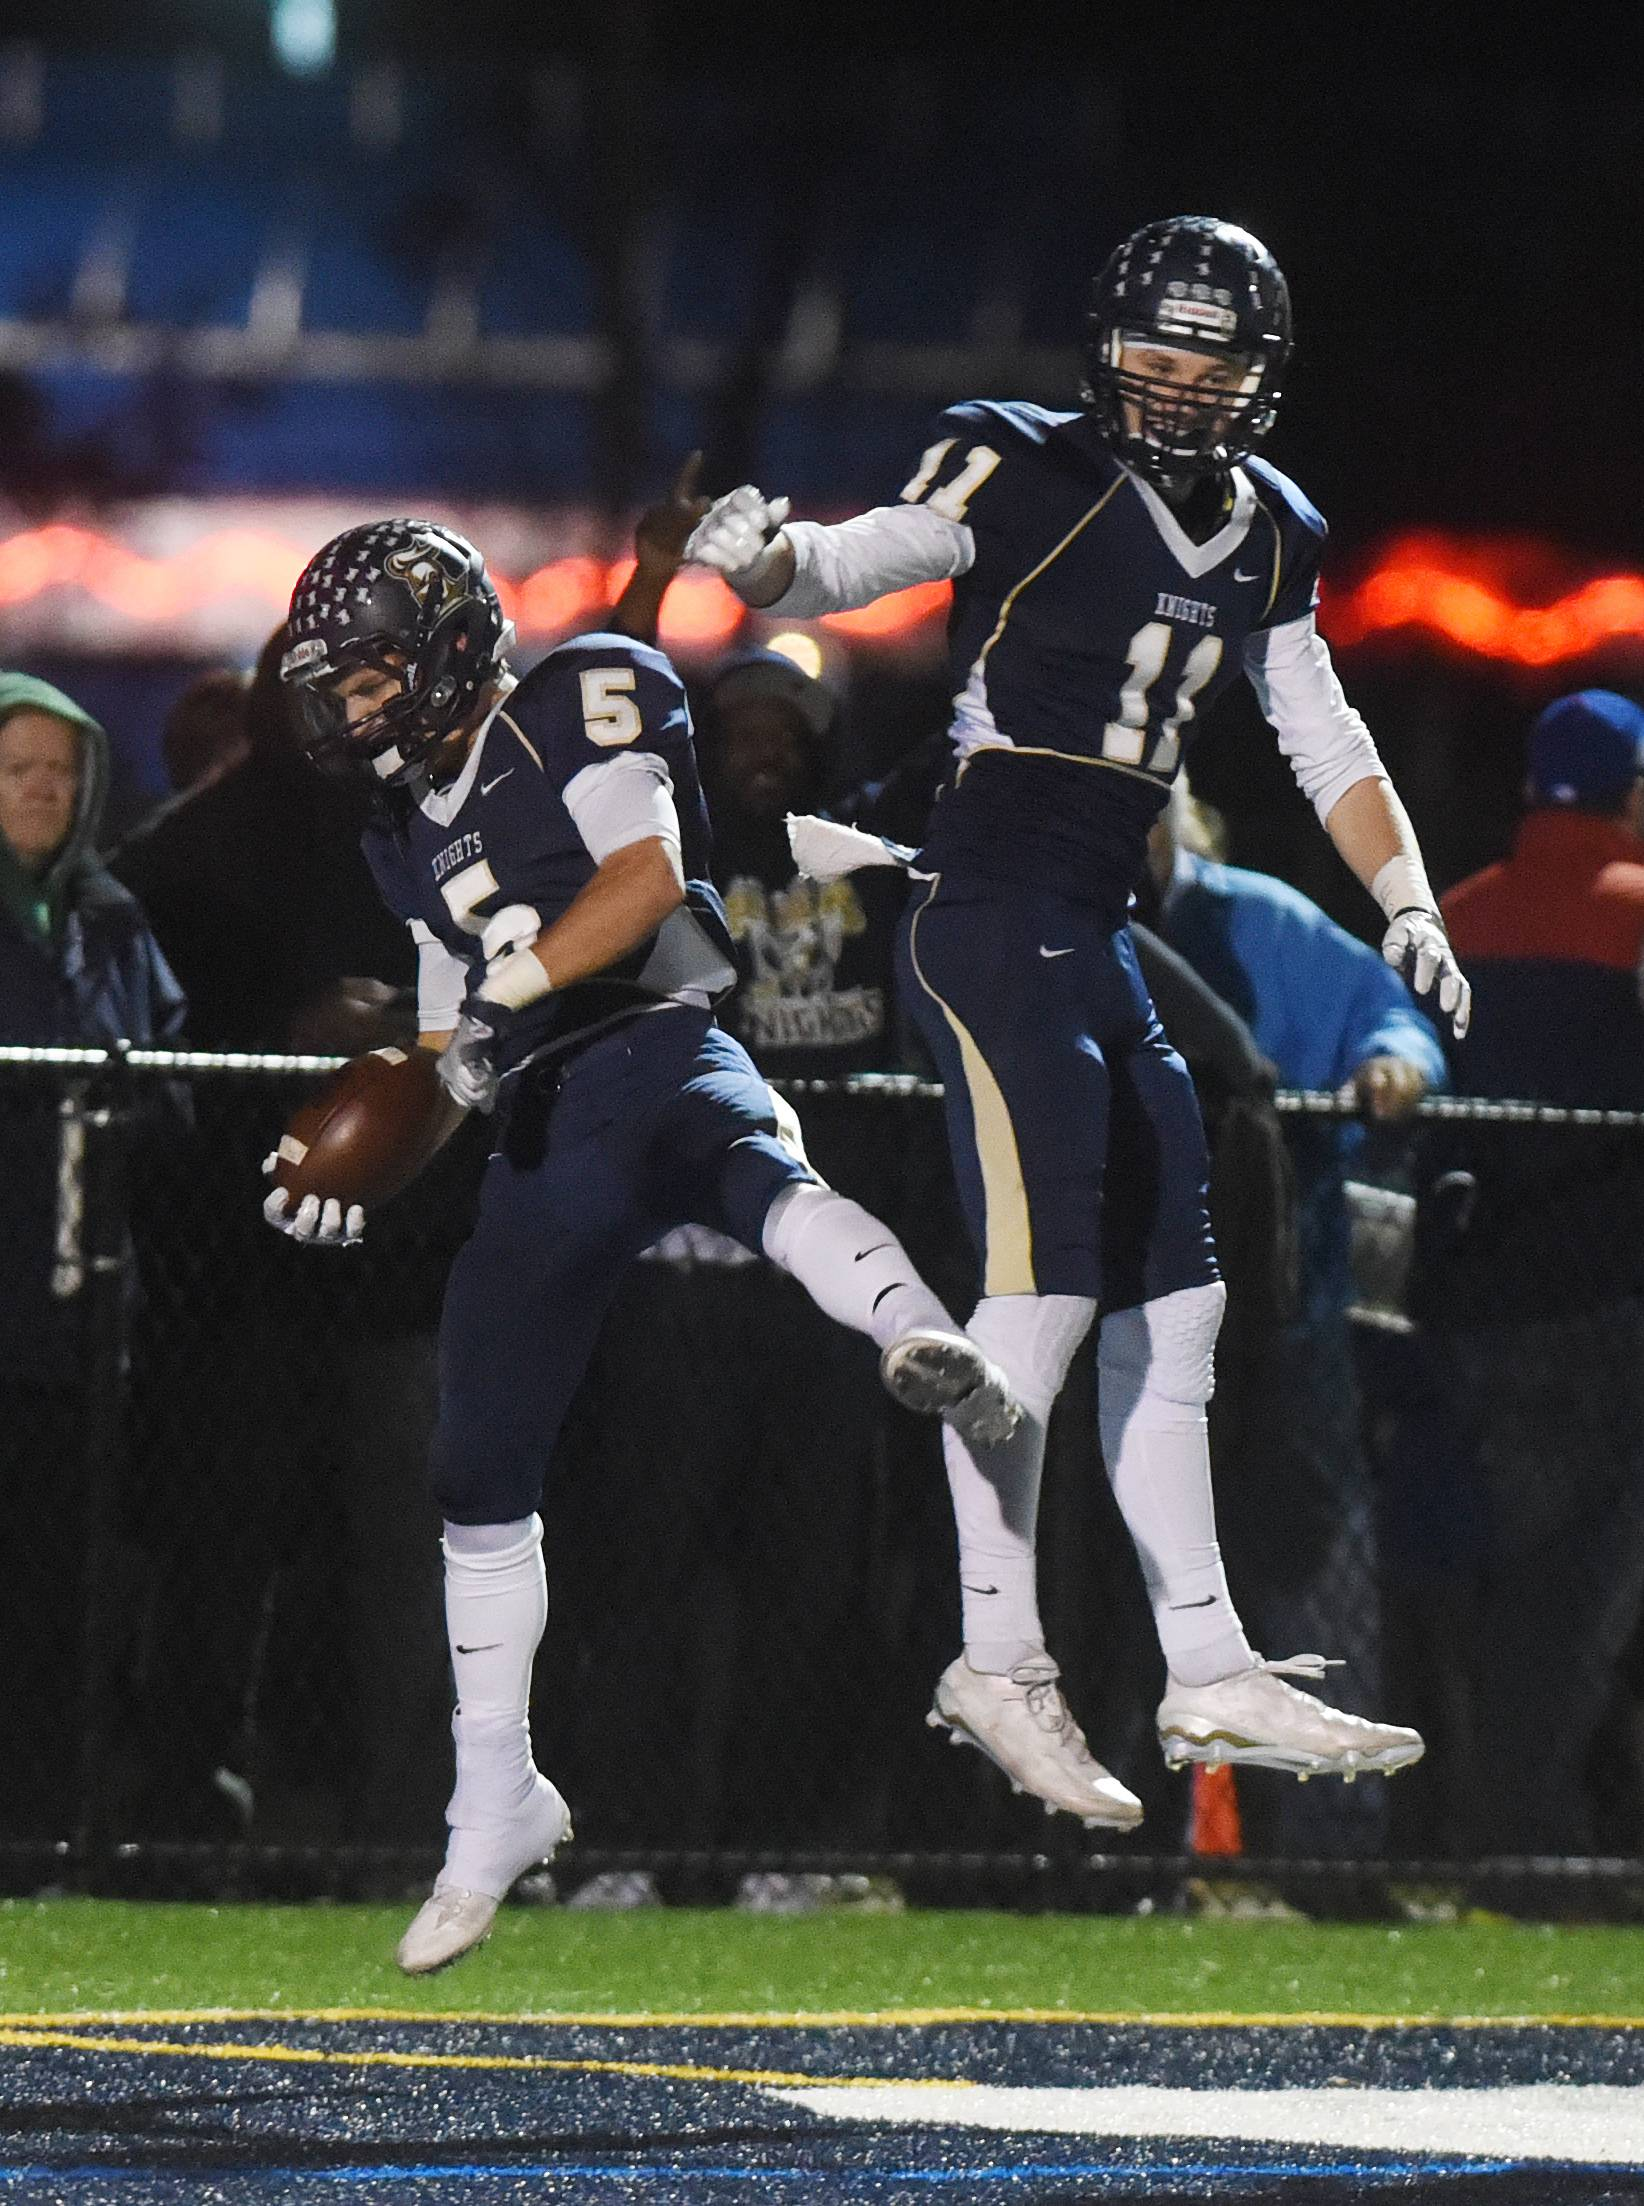 Images: IC Catholic Prep vs. Wilmington playoff football